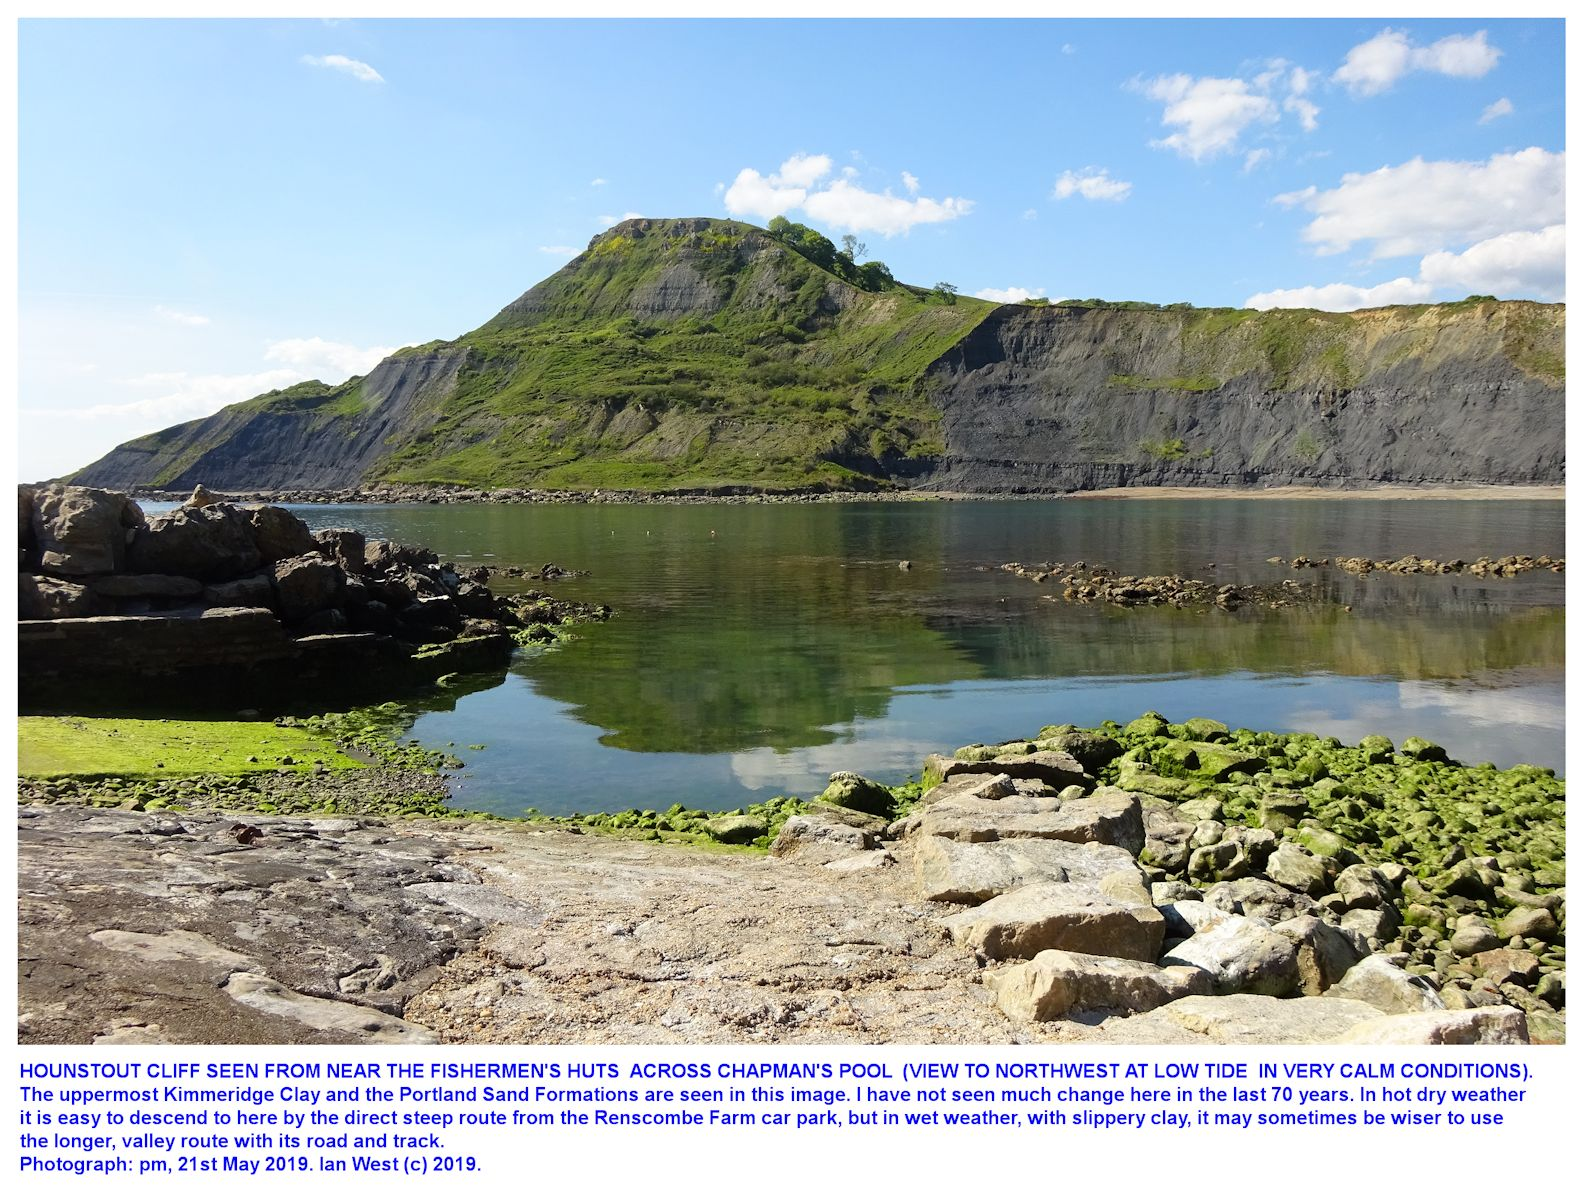 View northwest across Chapman's Pool towards Hounstout Cliff in very calm, warm conditions, 21st May 2019, by Ian West